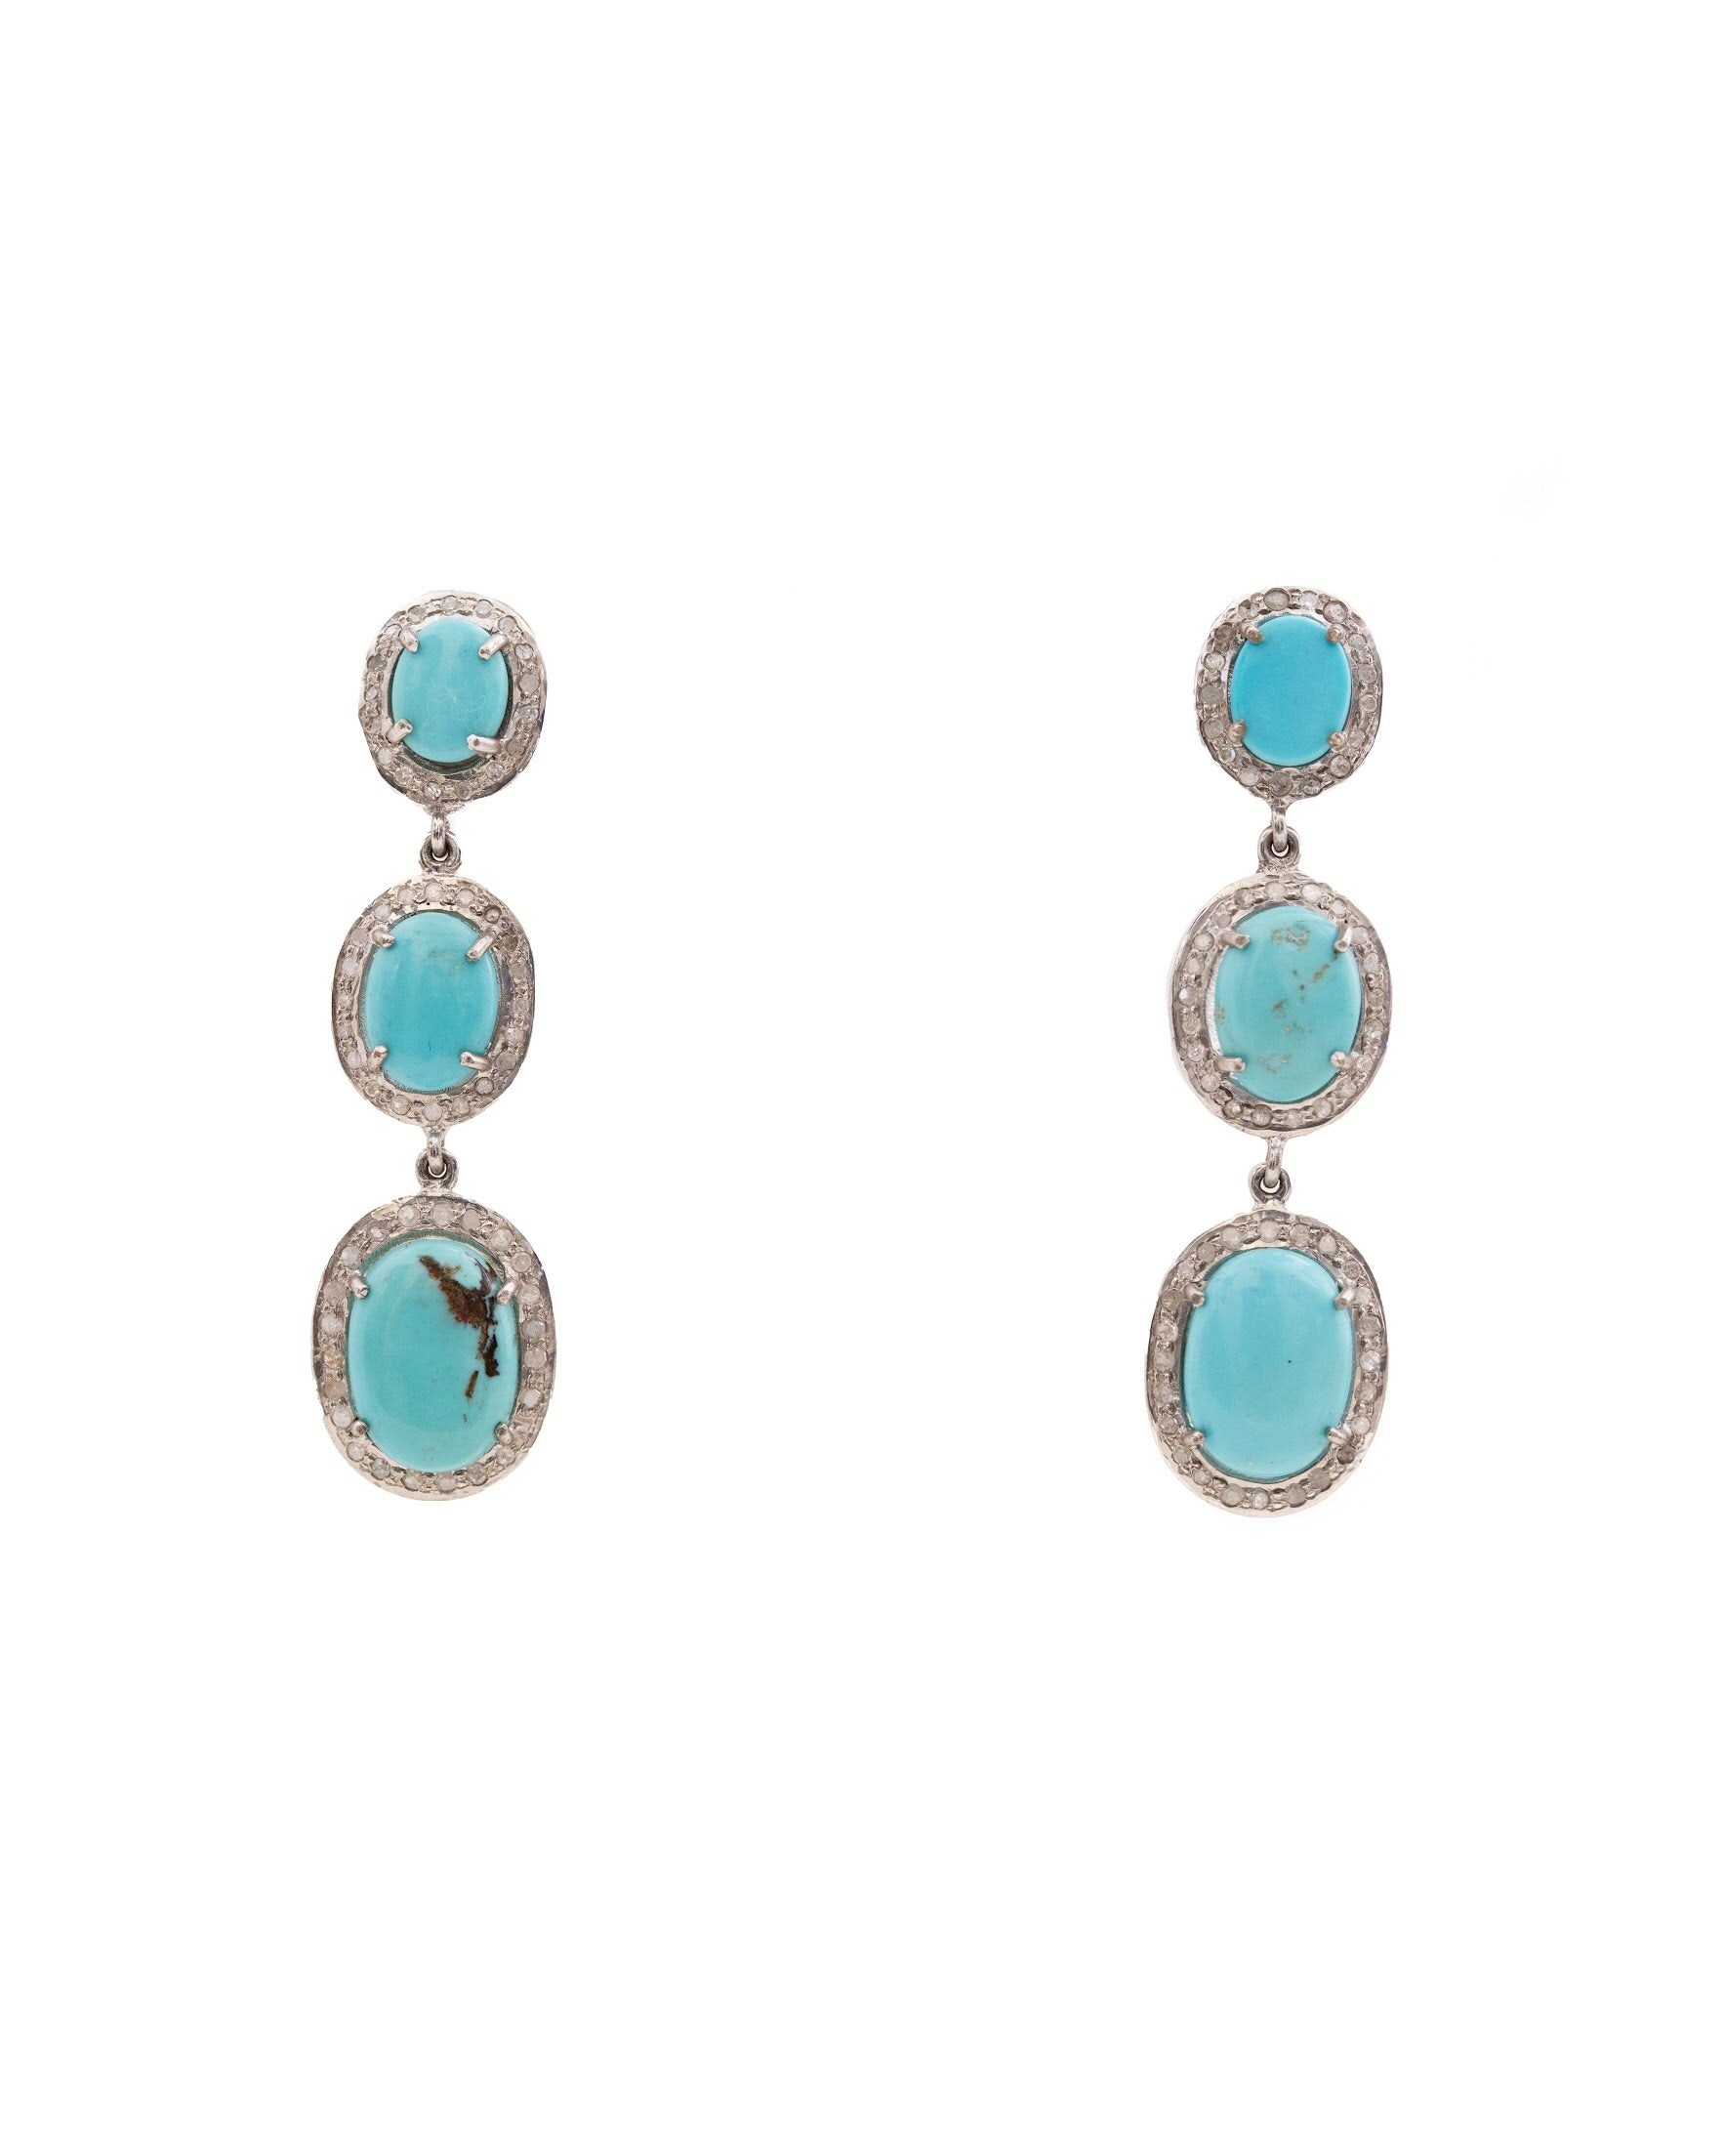 S.Row Designs Turquoise and Diamond Earrings